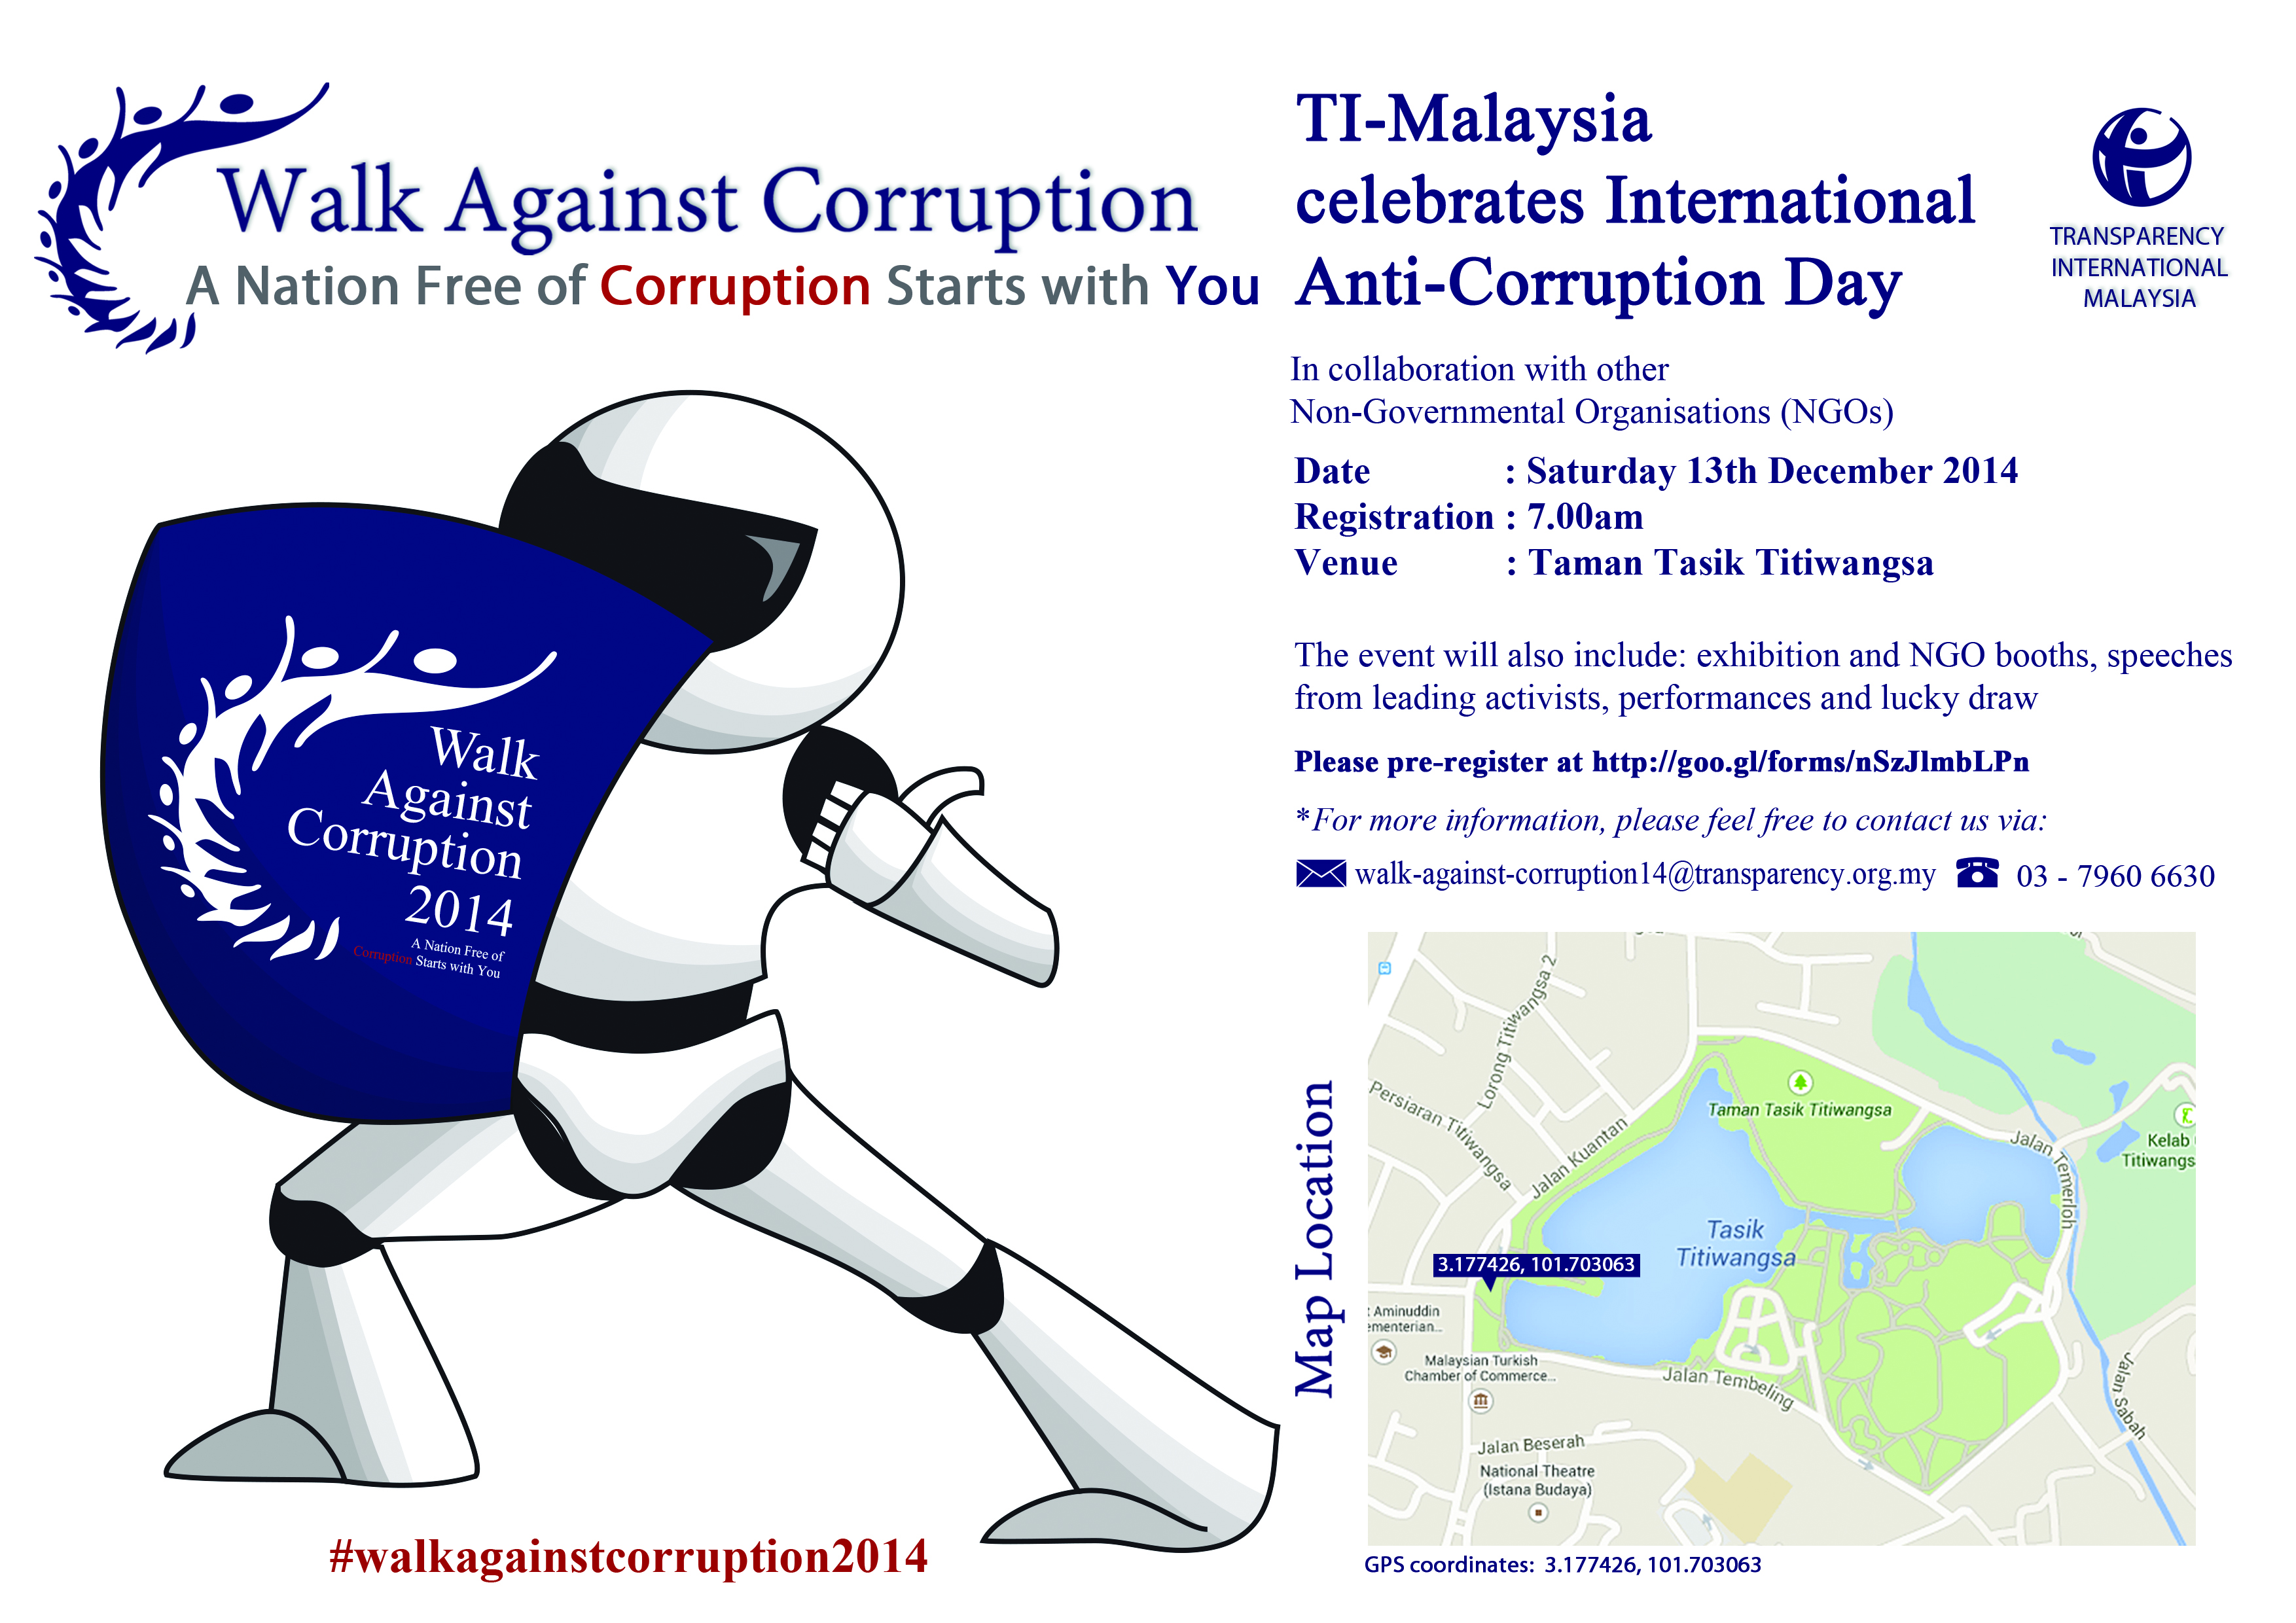 The 2014 Walk Against Corruption is this Saturday!